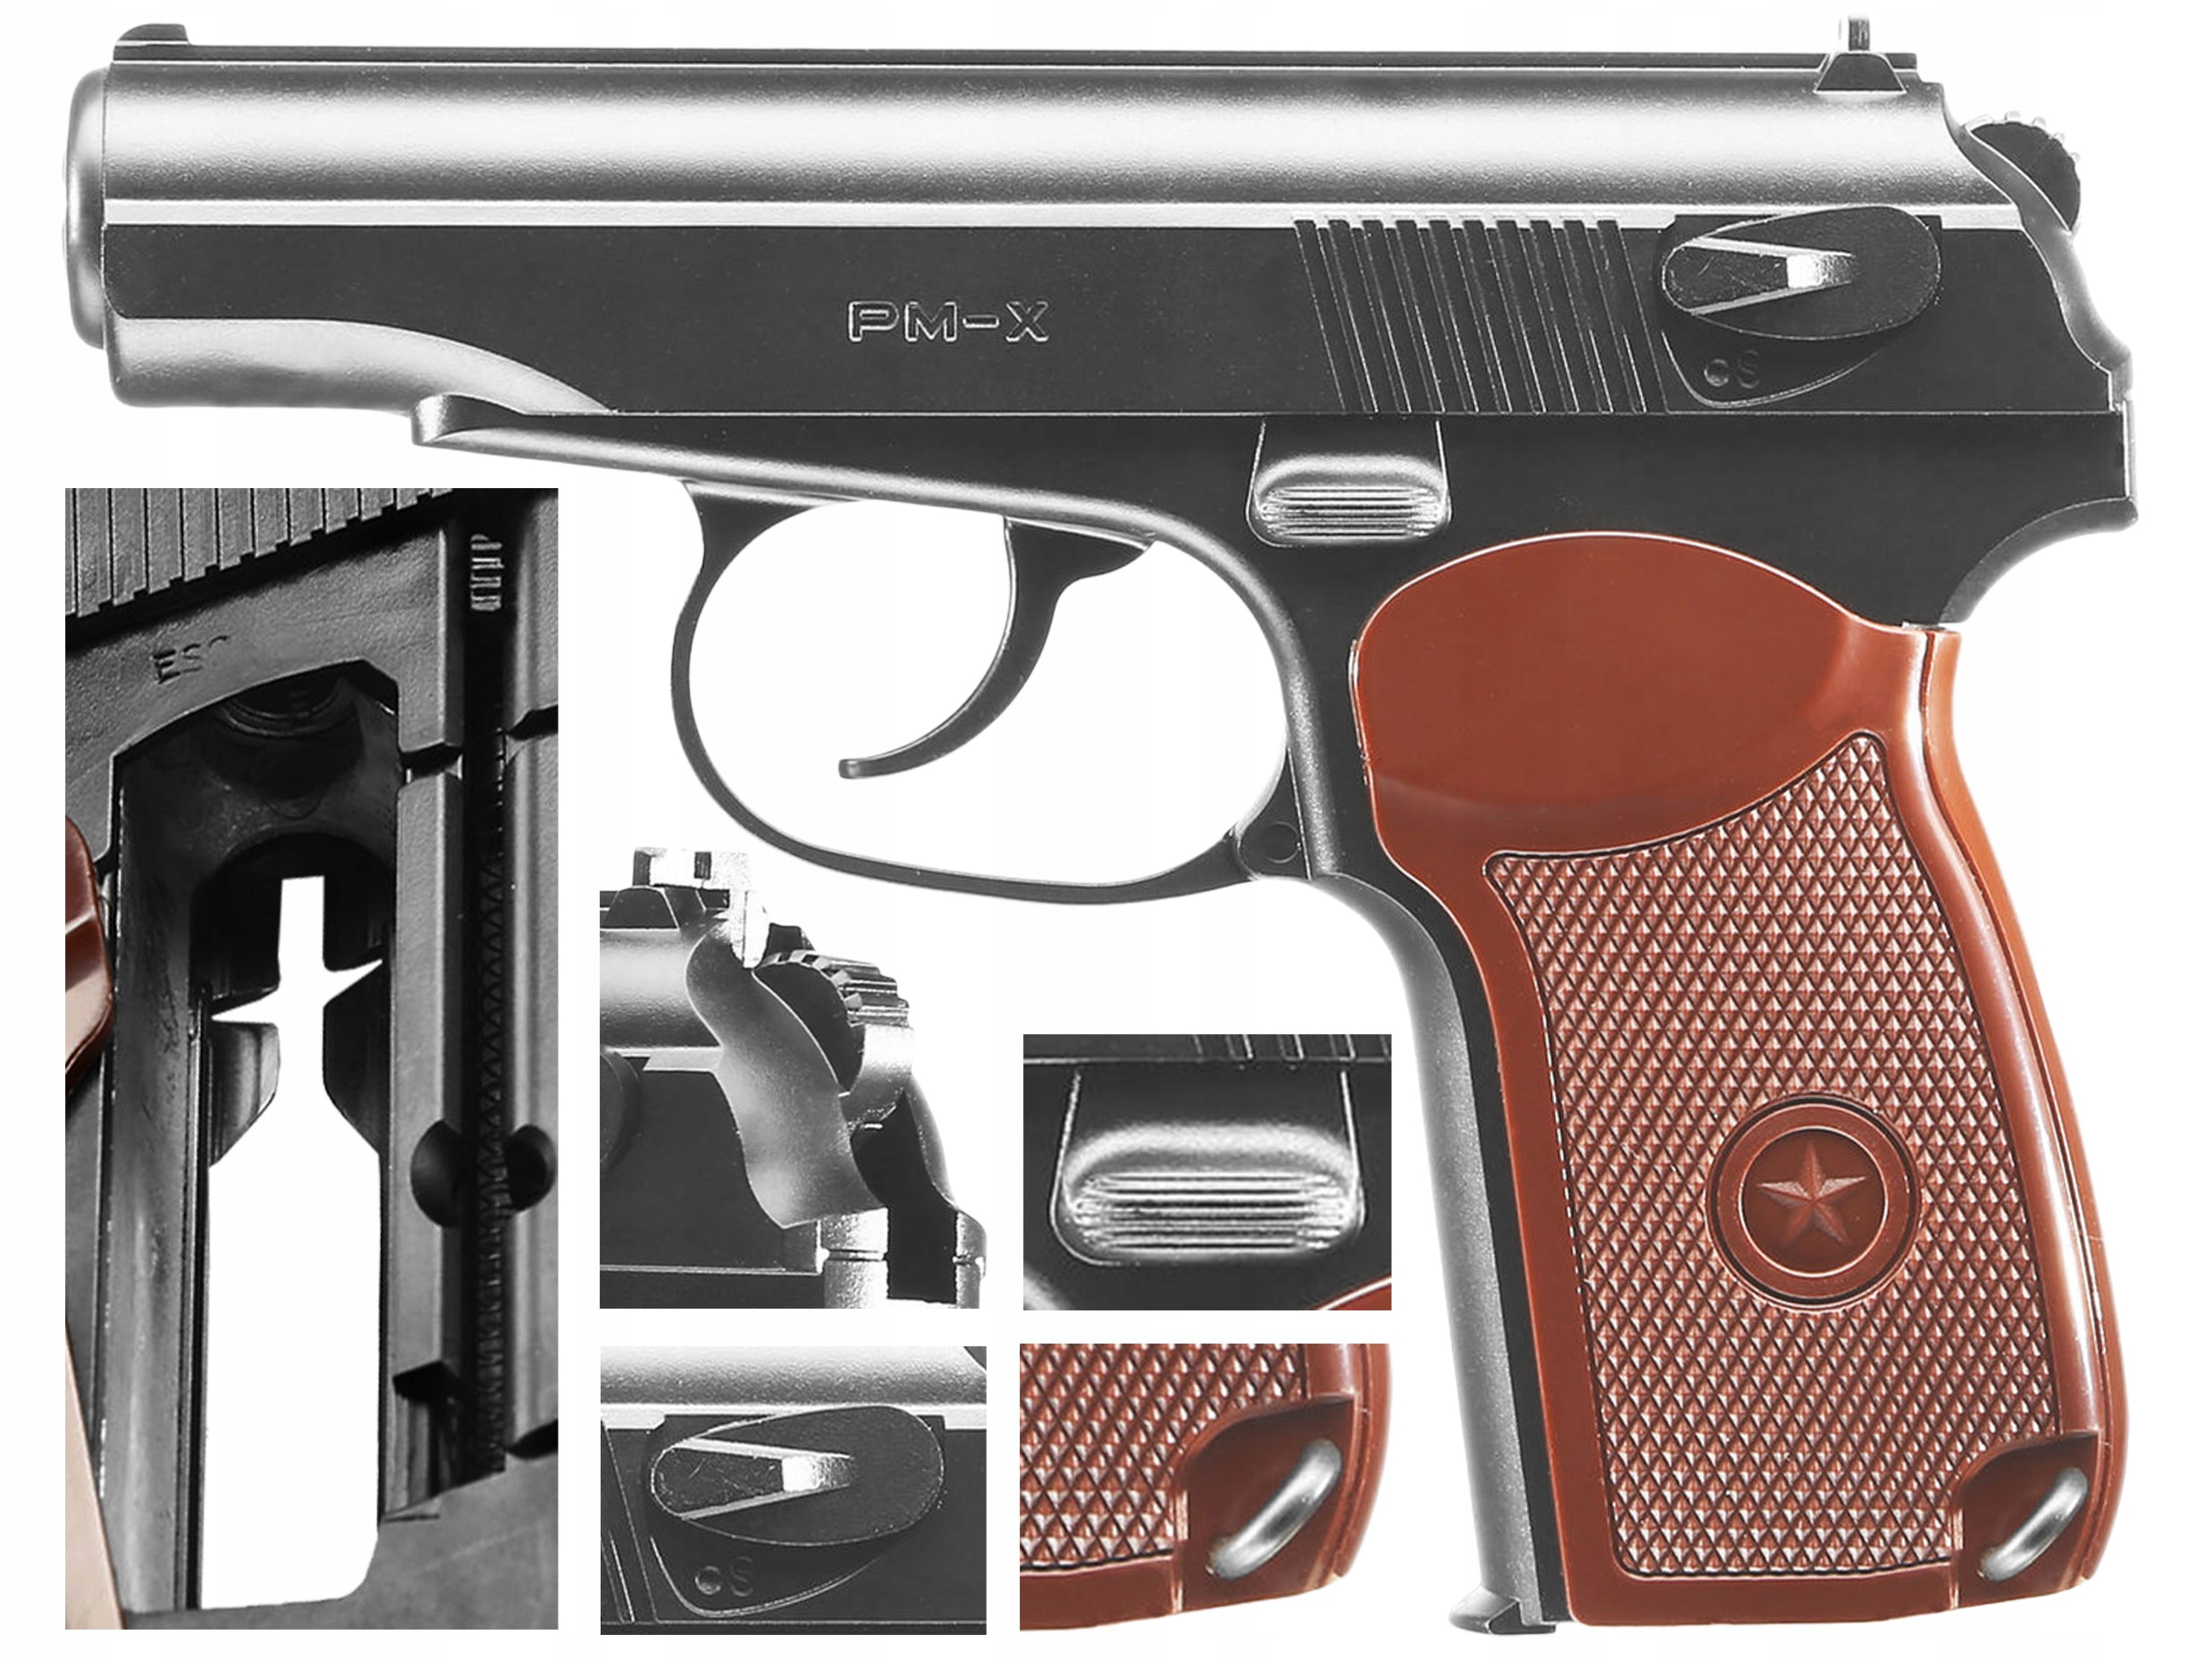 MAKAROV WIATRÓWKA PISTOLET PM-X 4,5 mm BB CO2